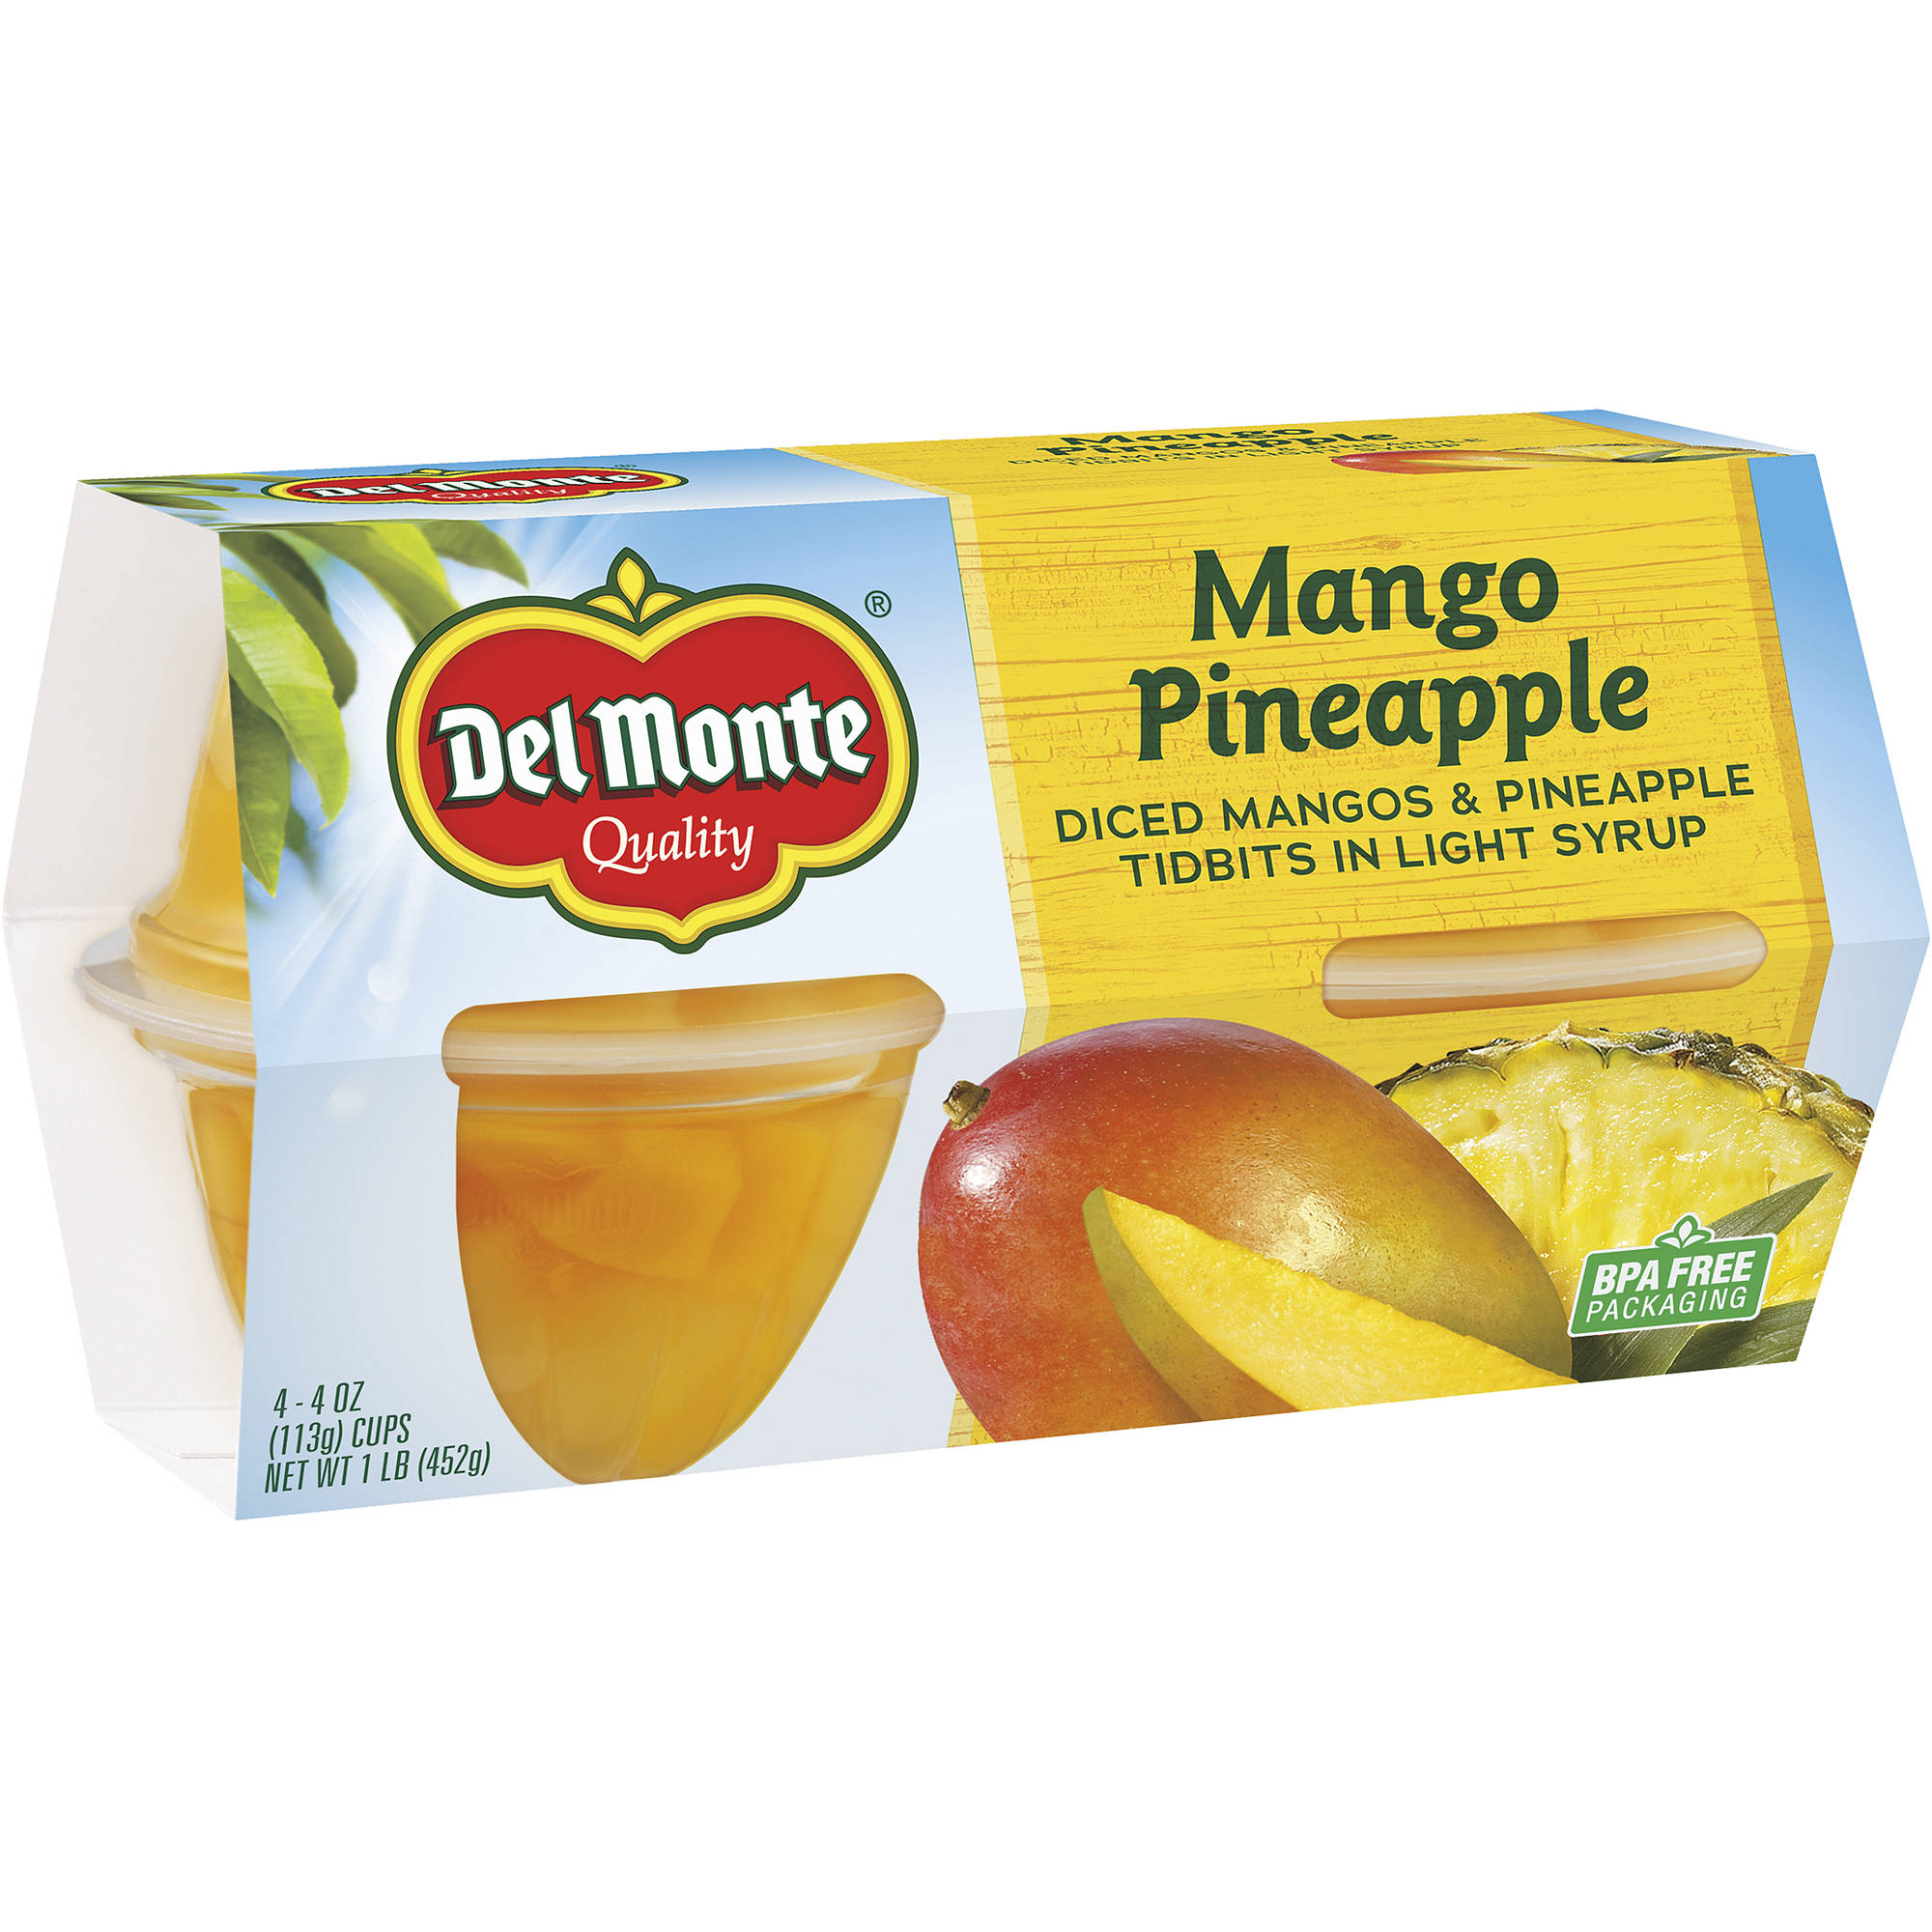 Del Monte Mango Pineapple Tidbits in Light Syrup Cups, 4 oz, 4 ct